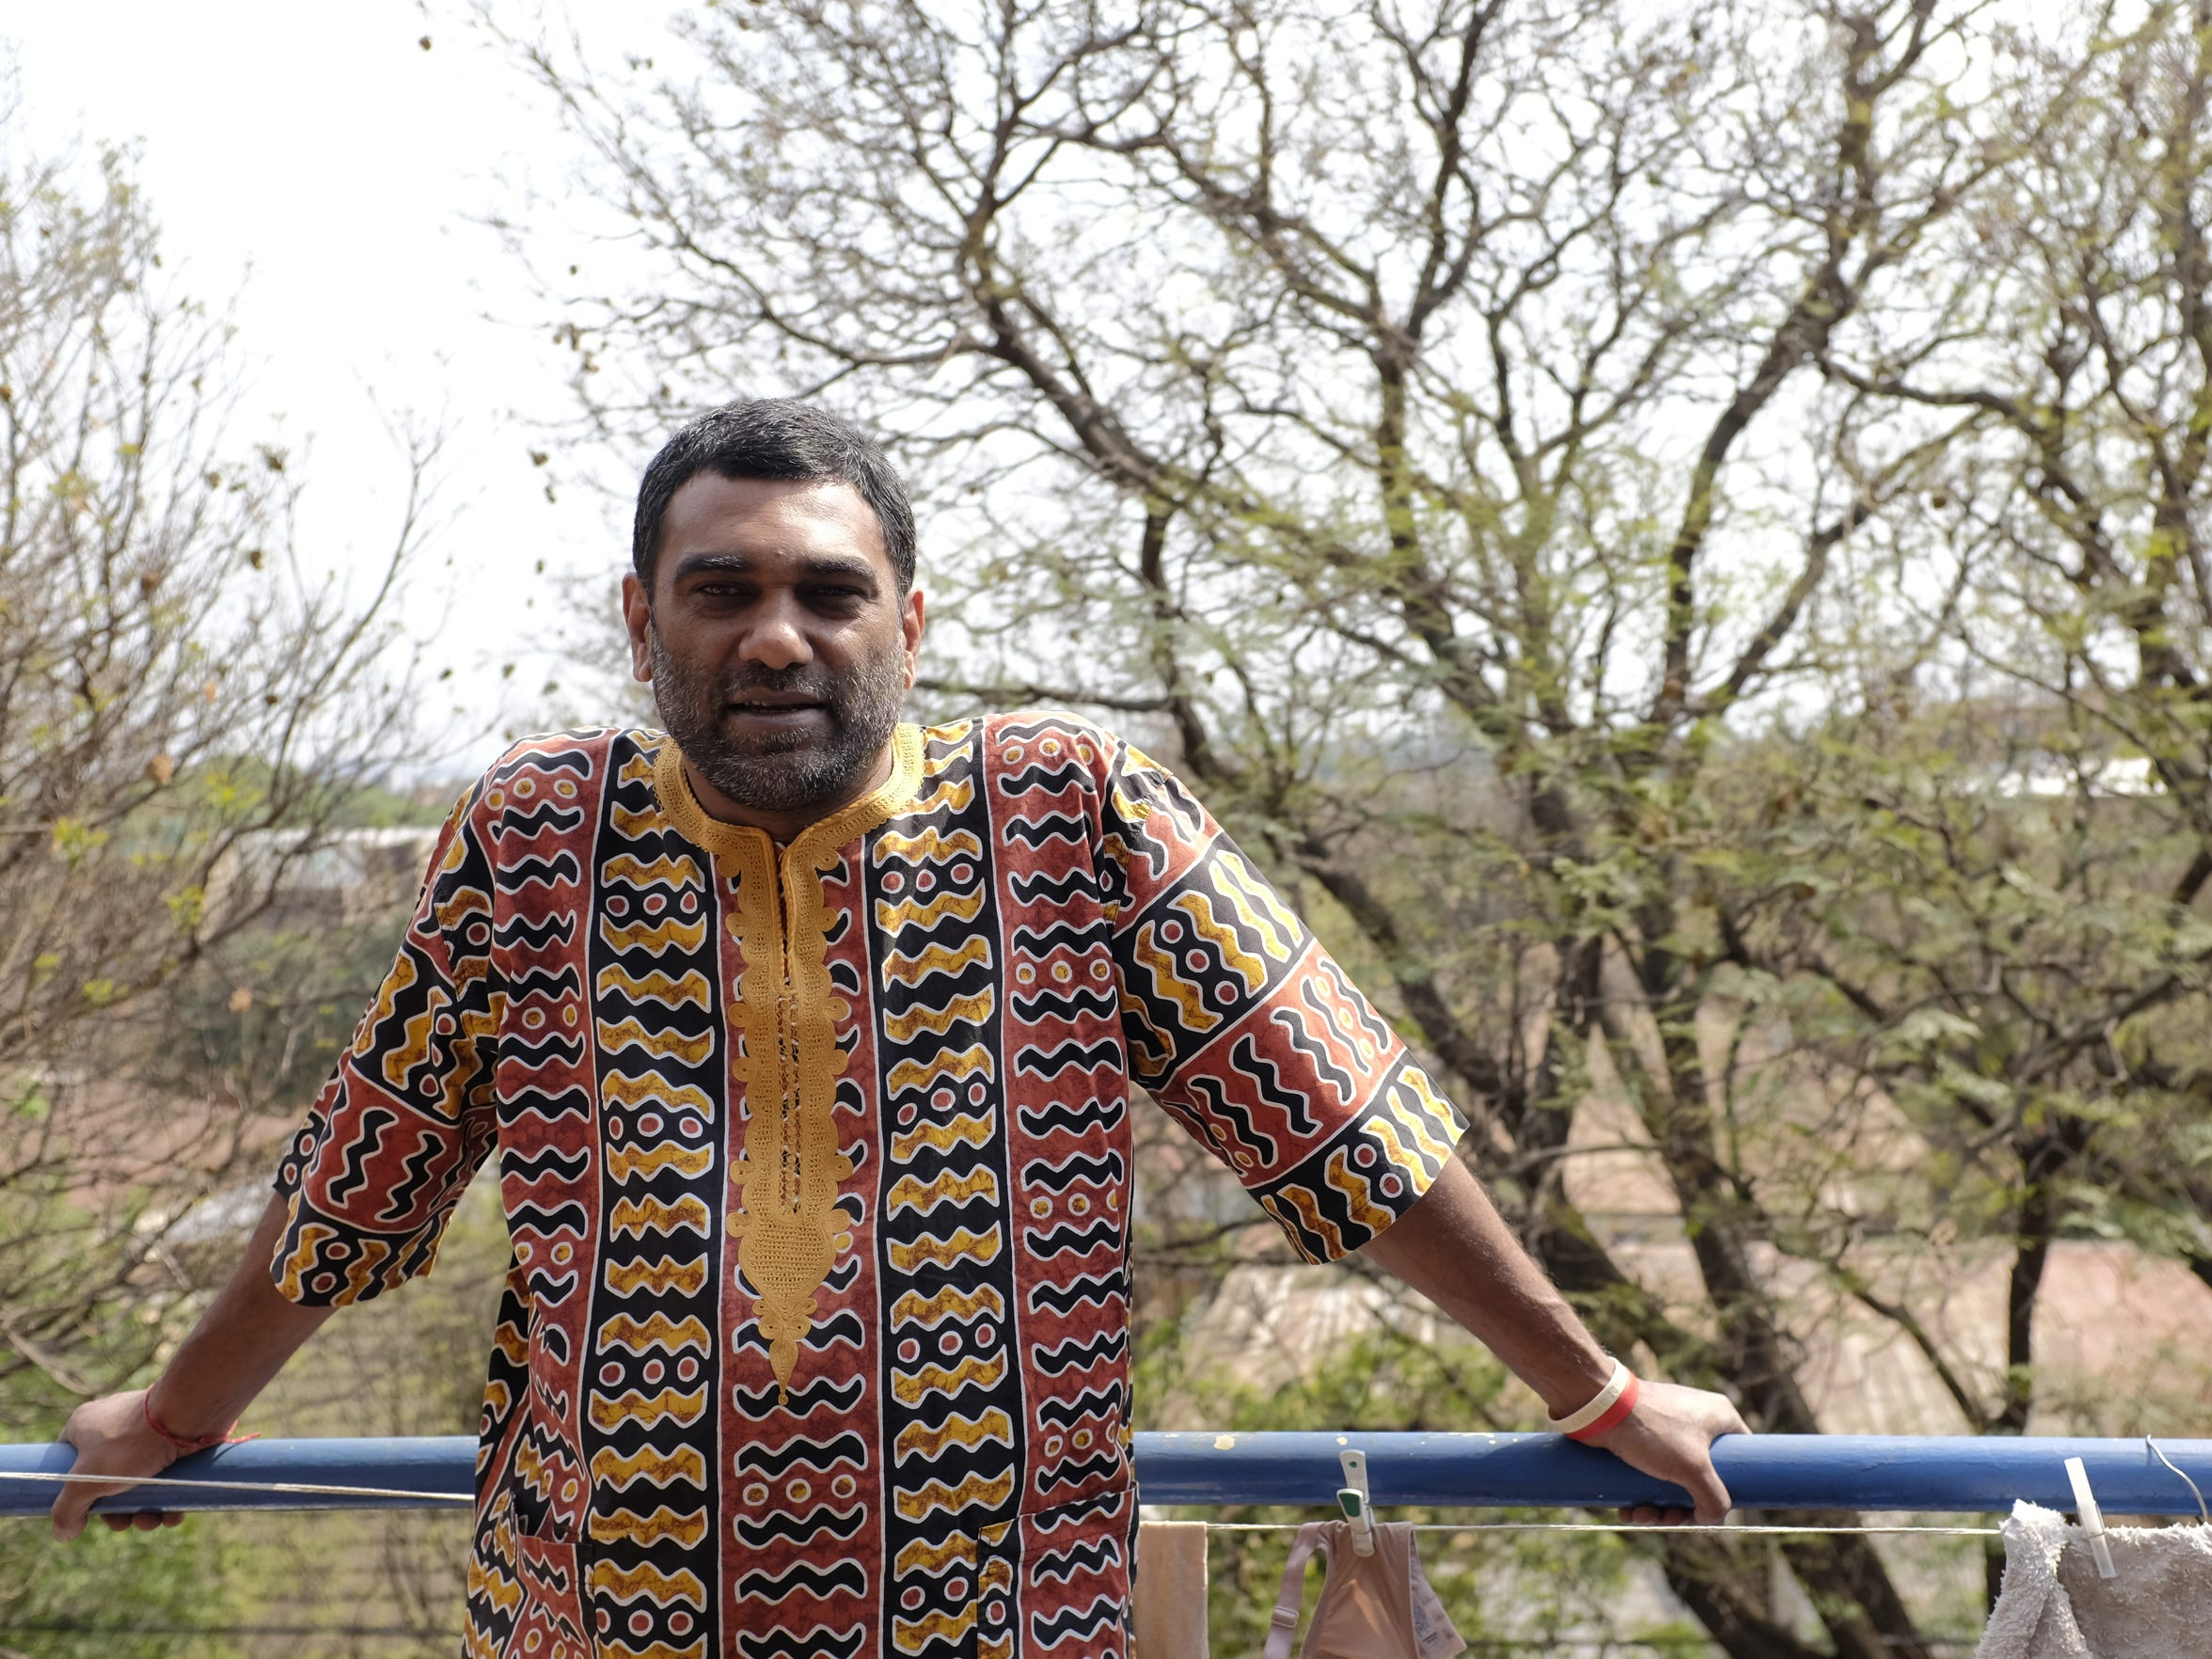 Kumi Naidoo, a former director at Greenpeace and the launch director of Africans Rising, a pan-African governance, advisory and leadership platform.